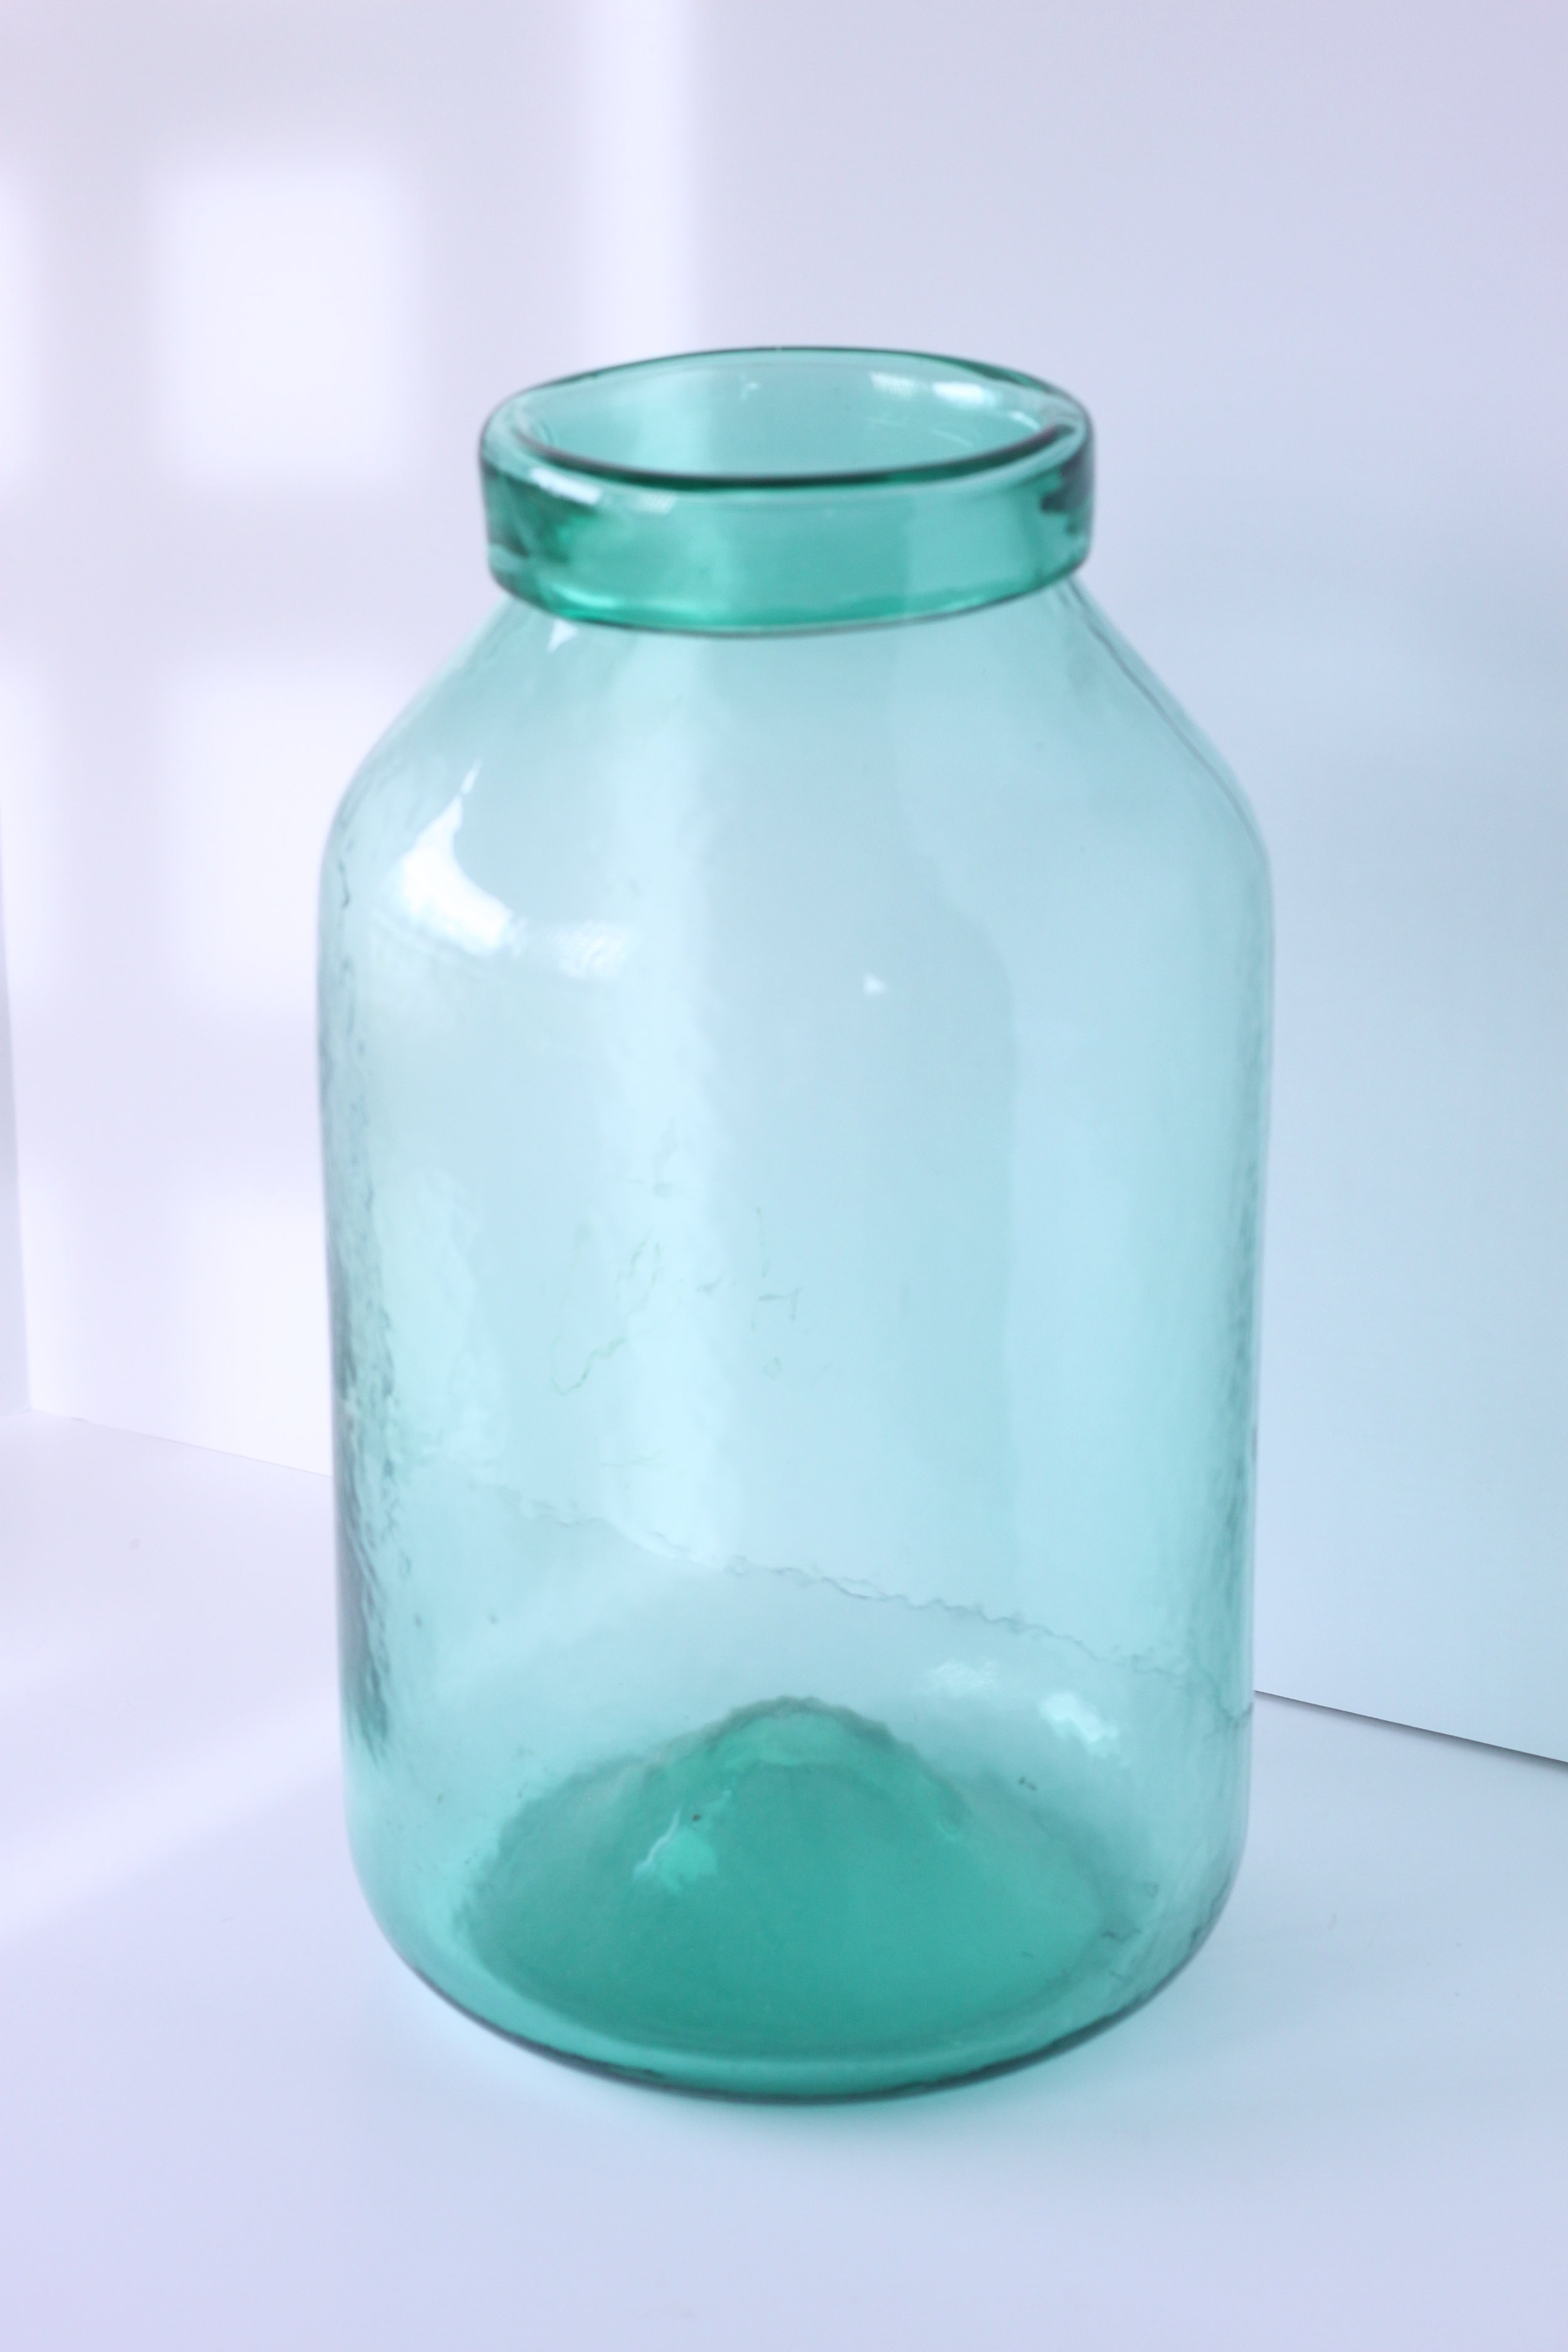 Copy of Seaglass Jar $9